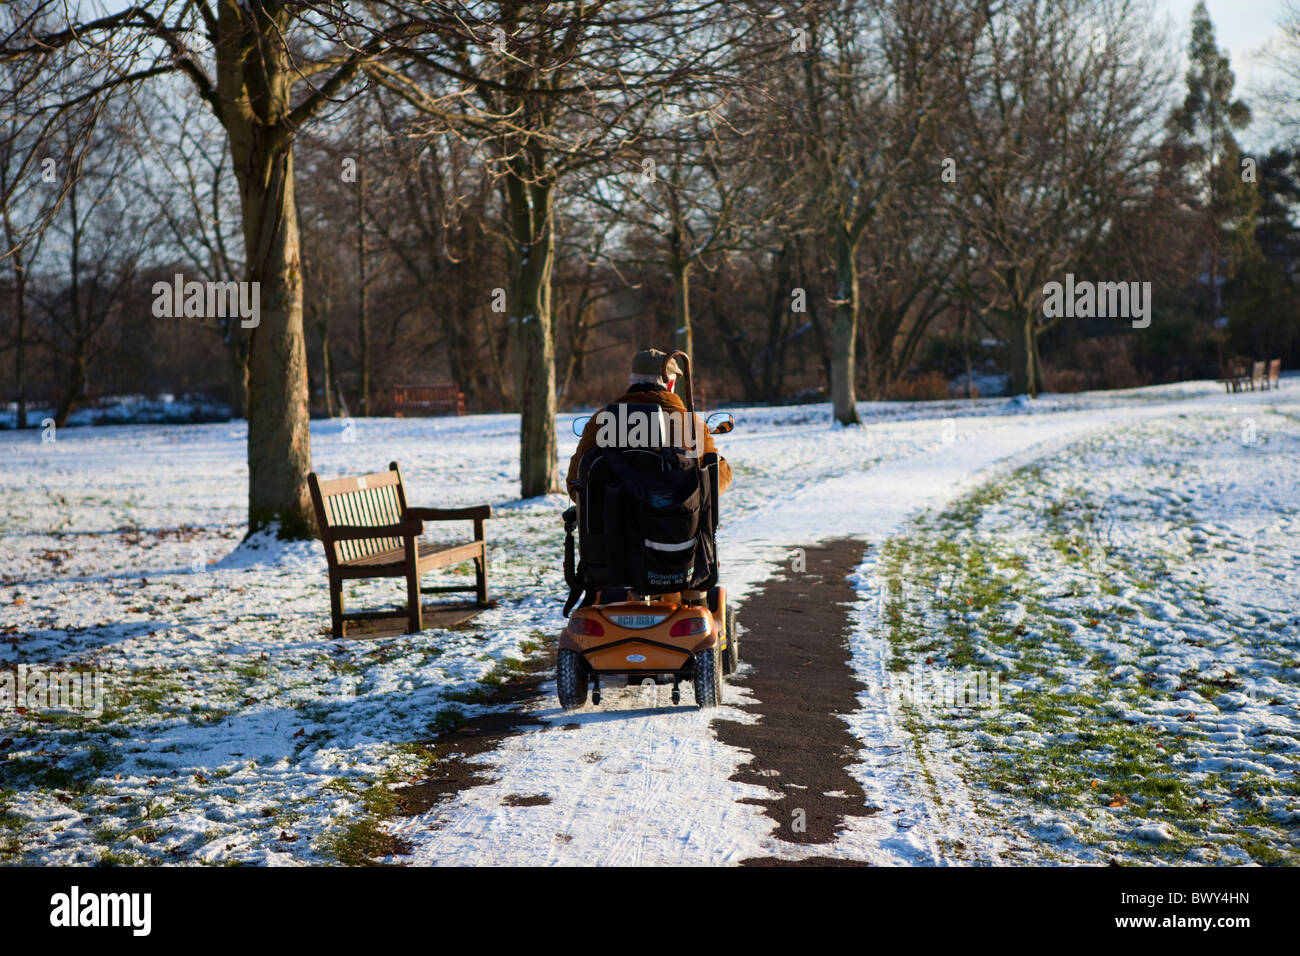 Person in an electric disability wheelchair/buggy riding through snow covered park Bakewell Derbyshire East Midlands - Stock Image